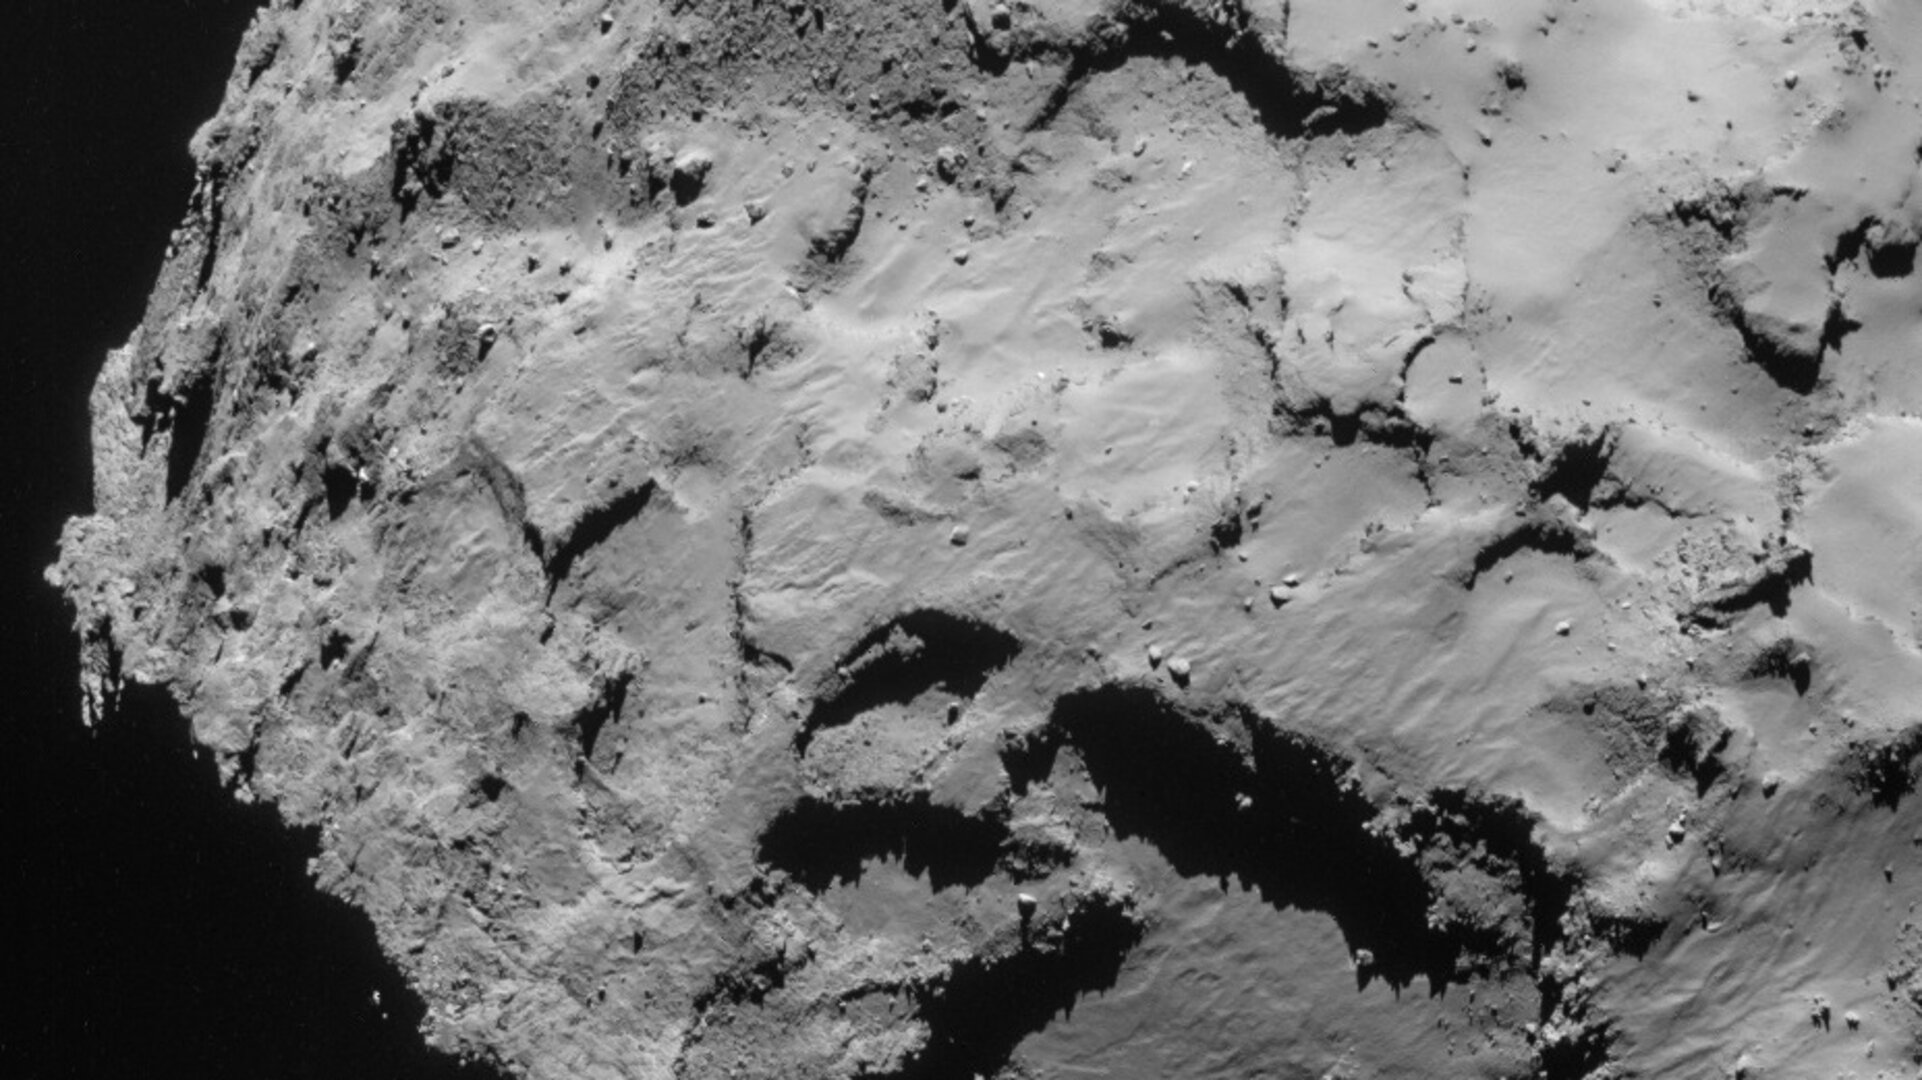 Landing site J in Rosetta's NavCam – 21 September